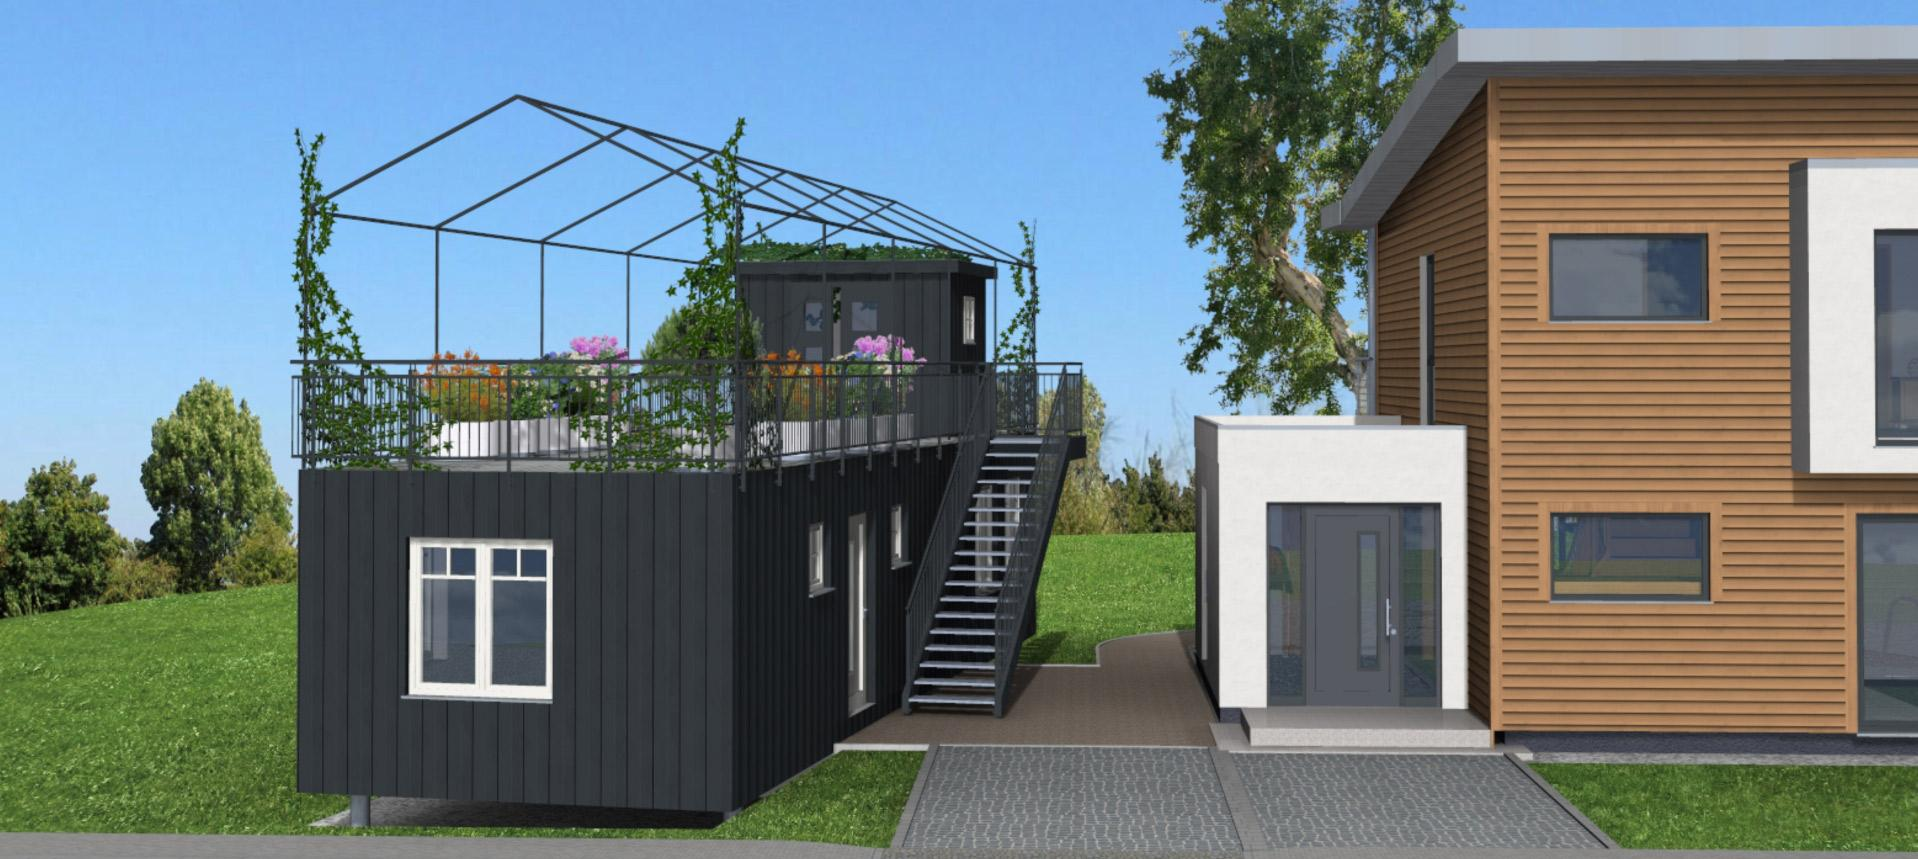 Schwörerhaus Flying Spaces Green Living Space - Kooperation Mit Ikea Und